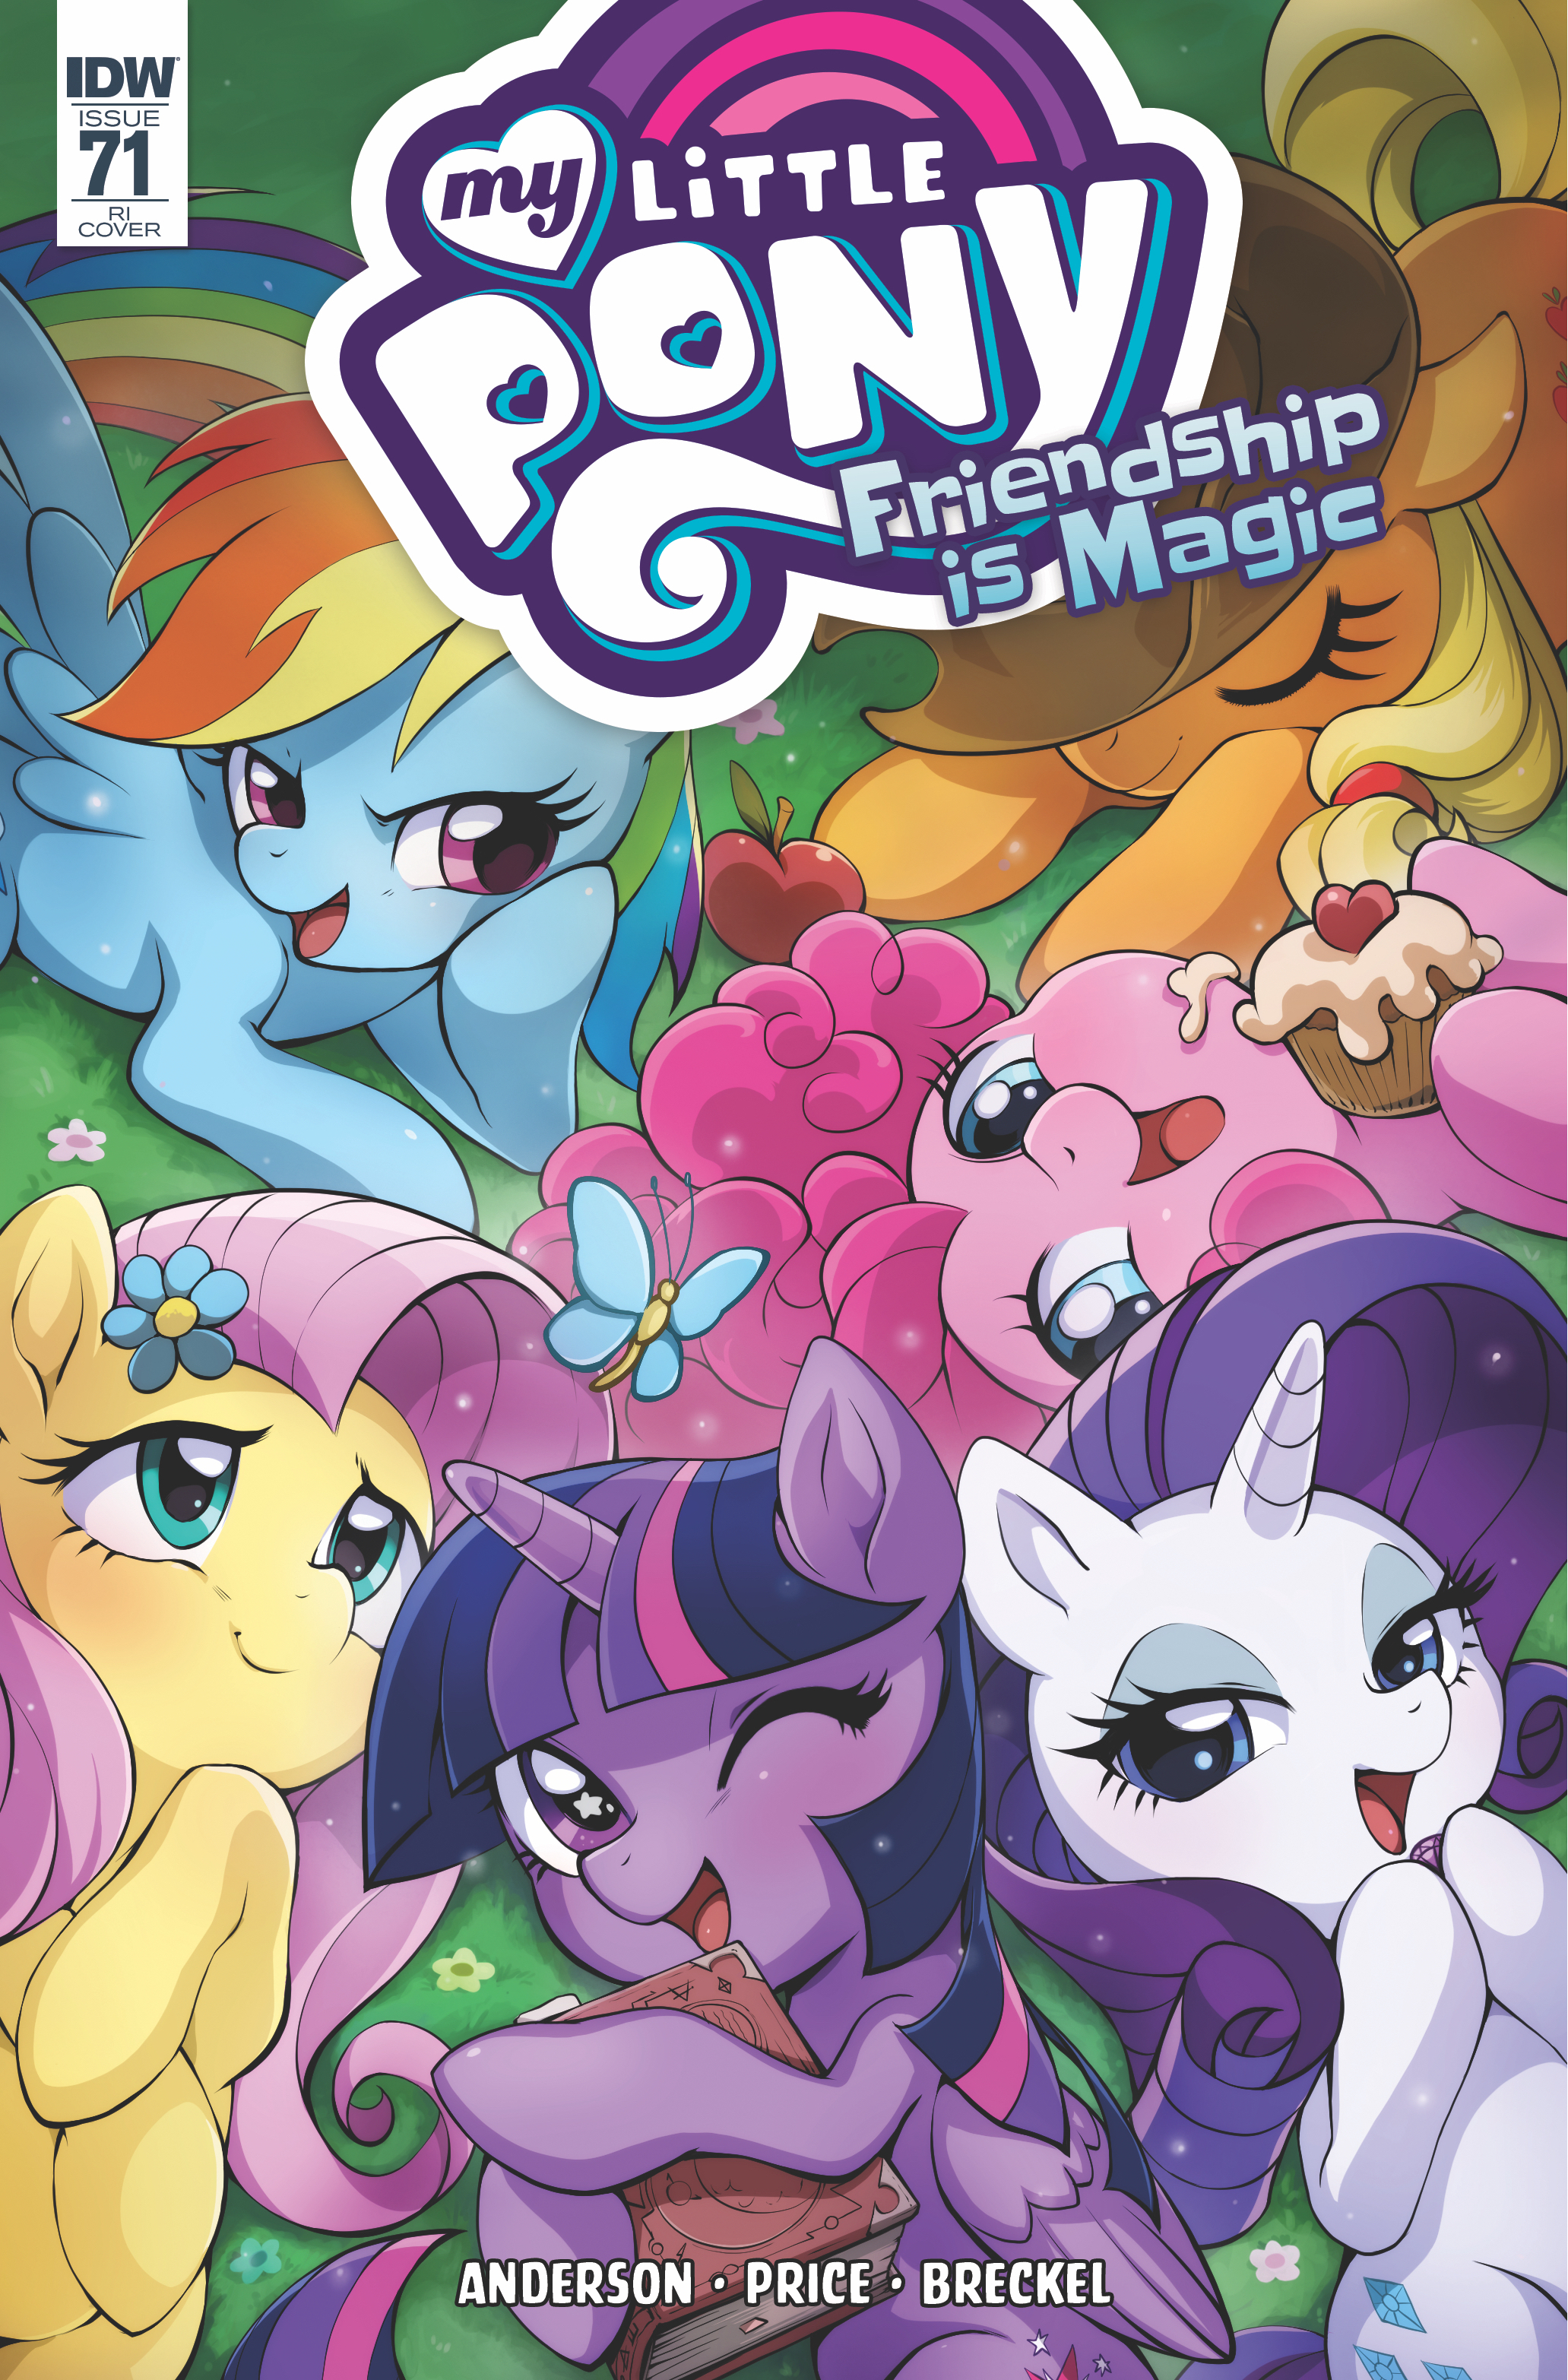 MY LITTLE PONY FRIENDSHIP IS MAGIC #71 10 COPY INCV CIBOS (N